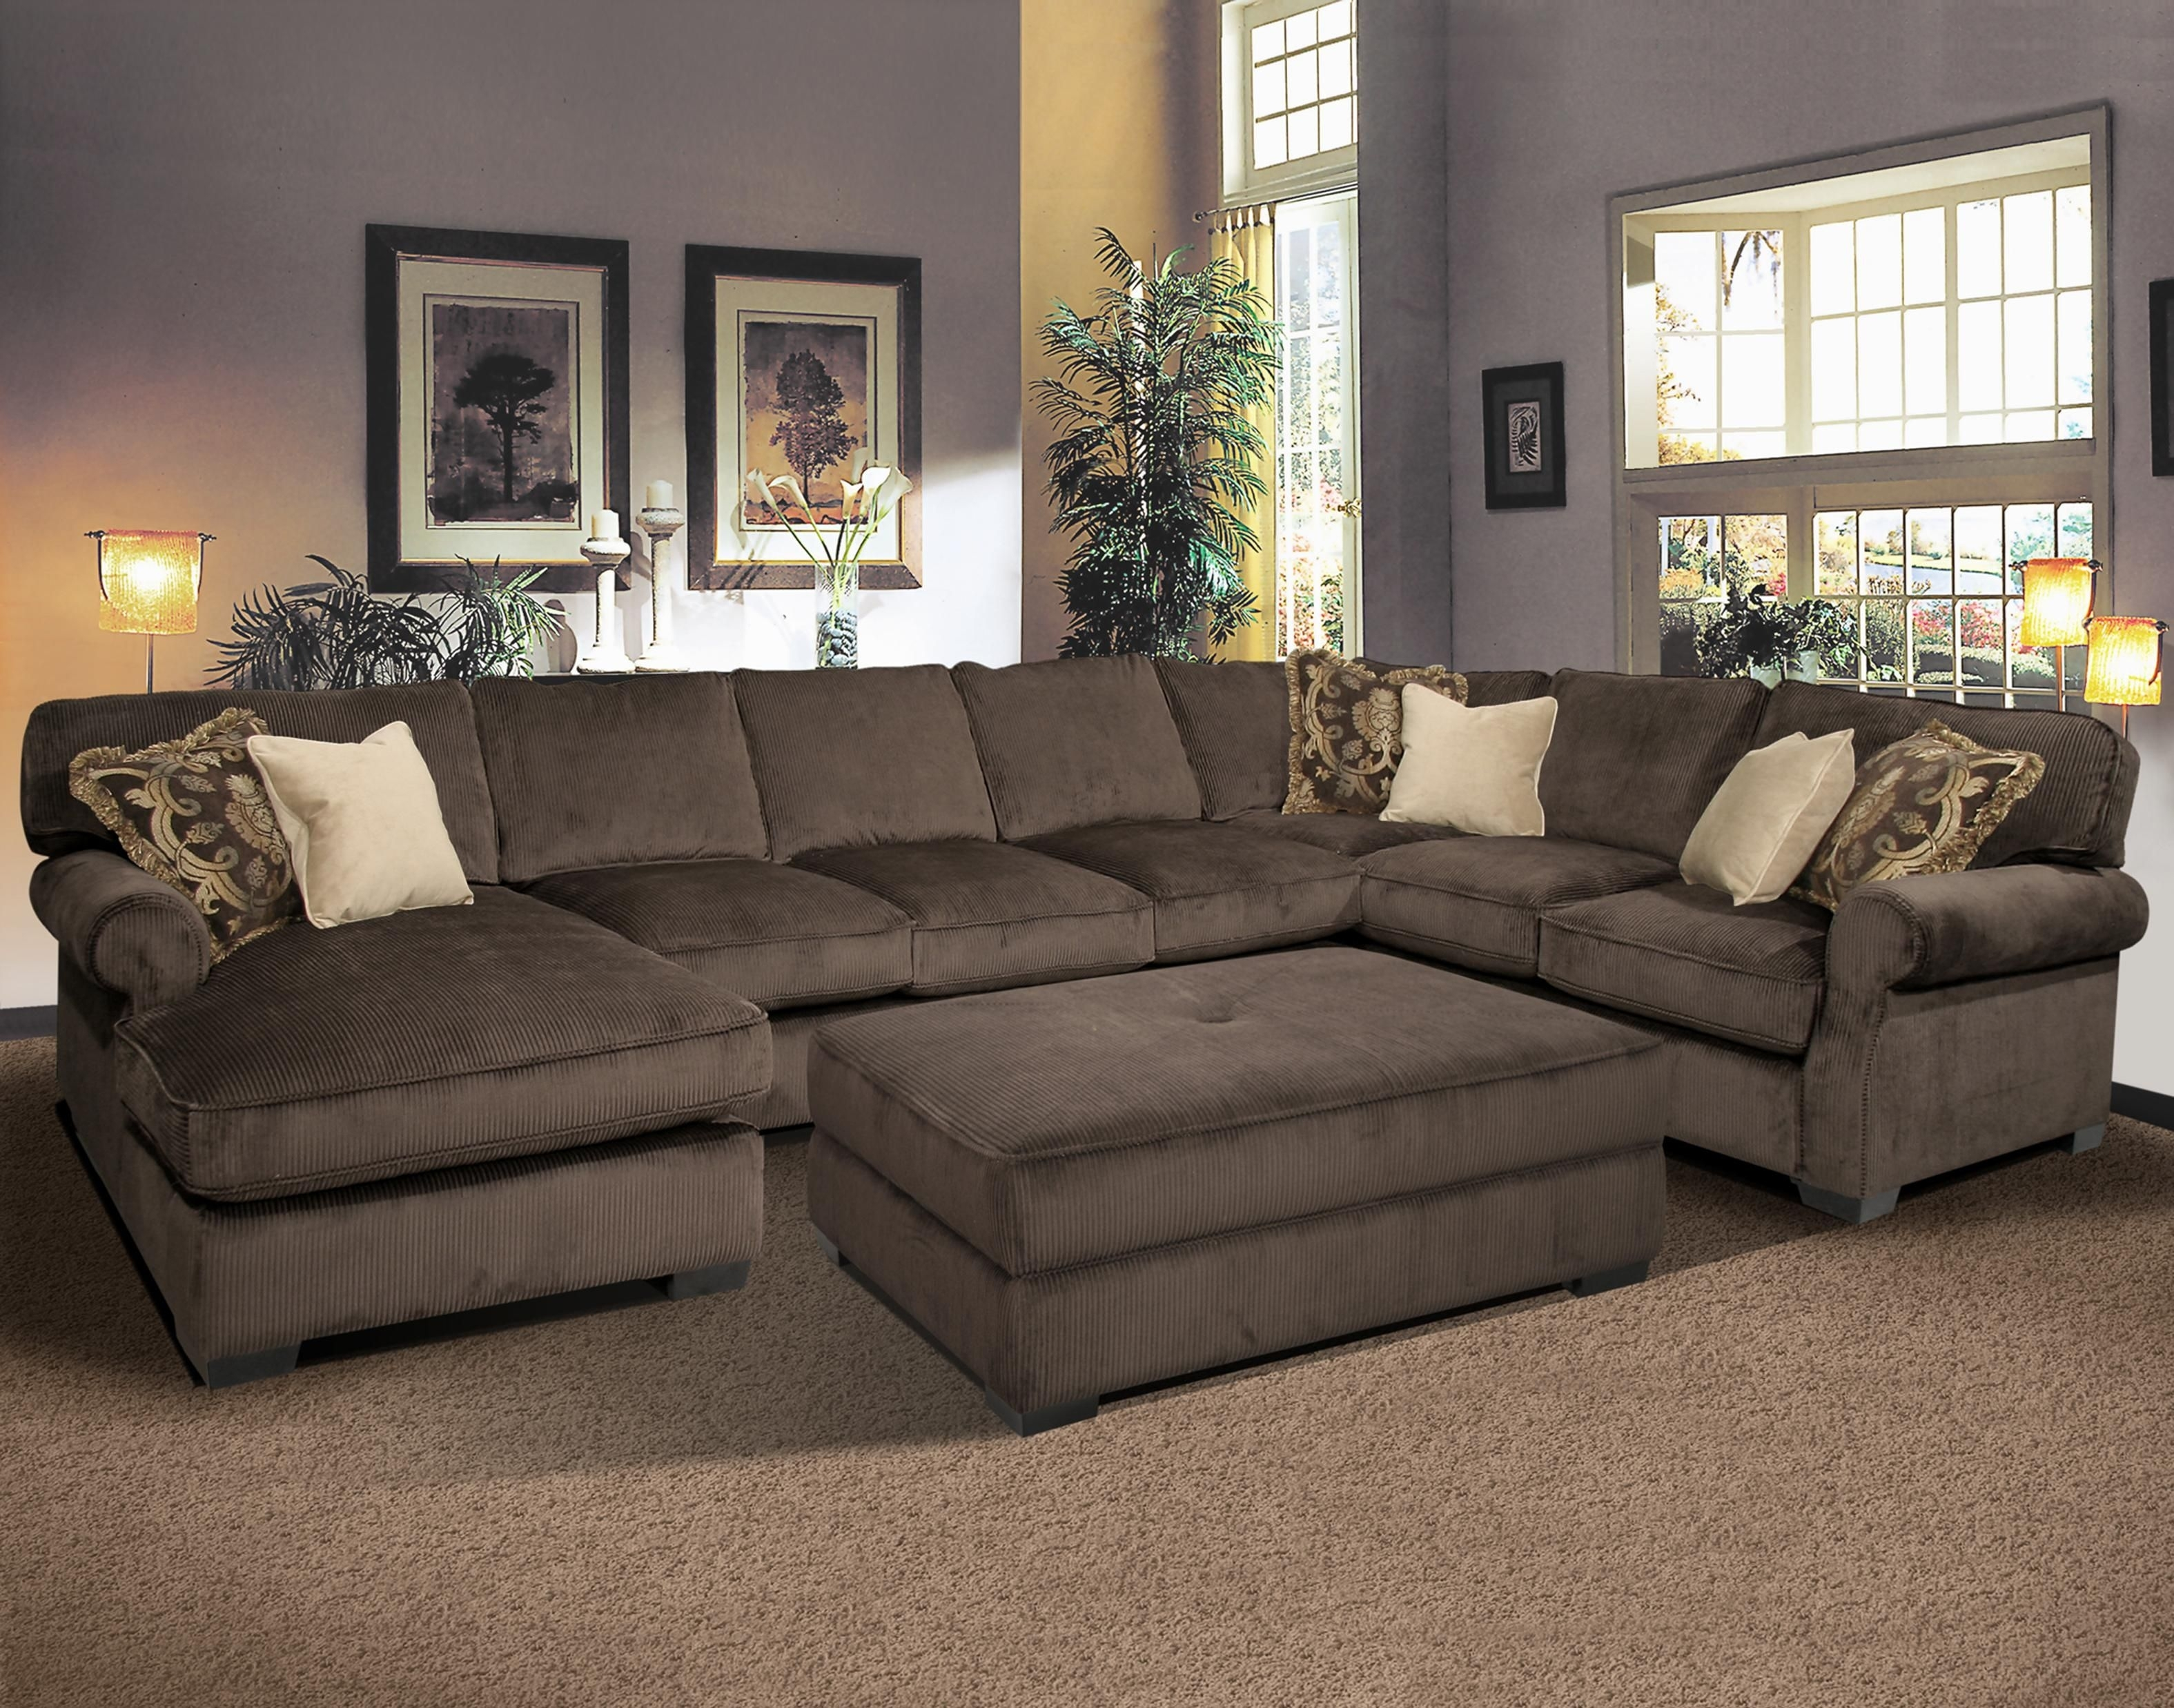 Popular Photo of Sectionals With Oversized Ottoman